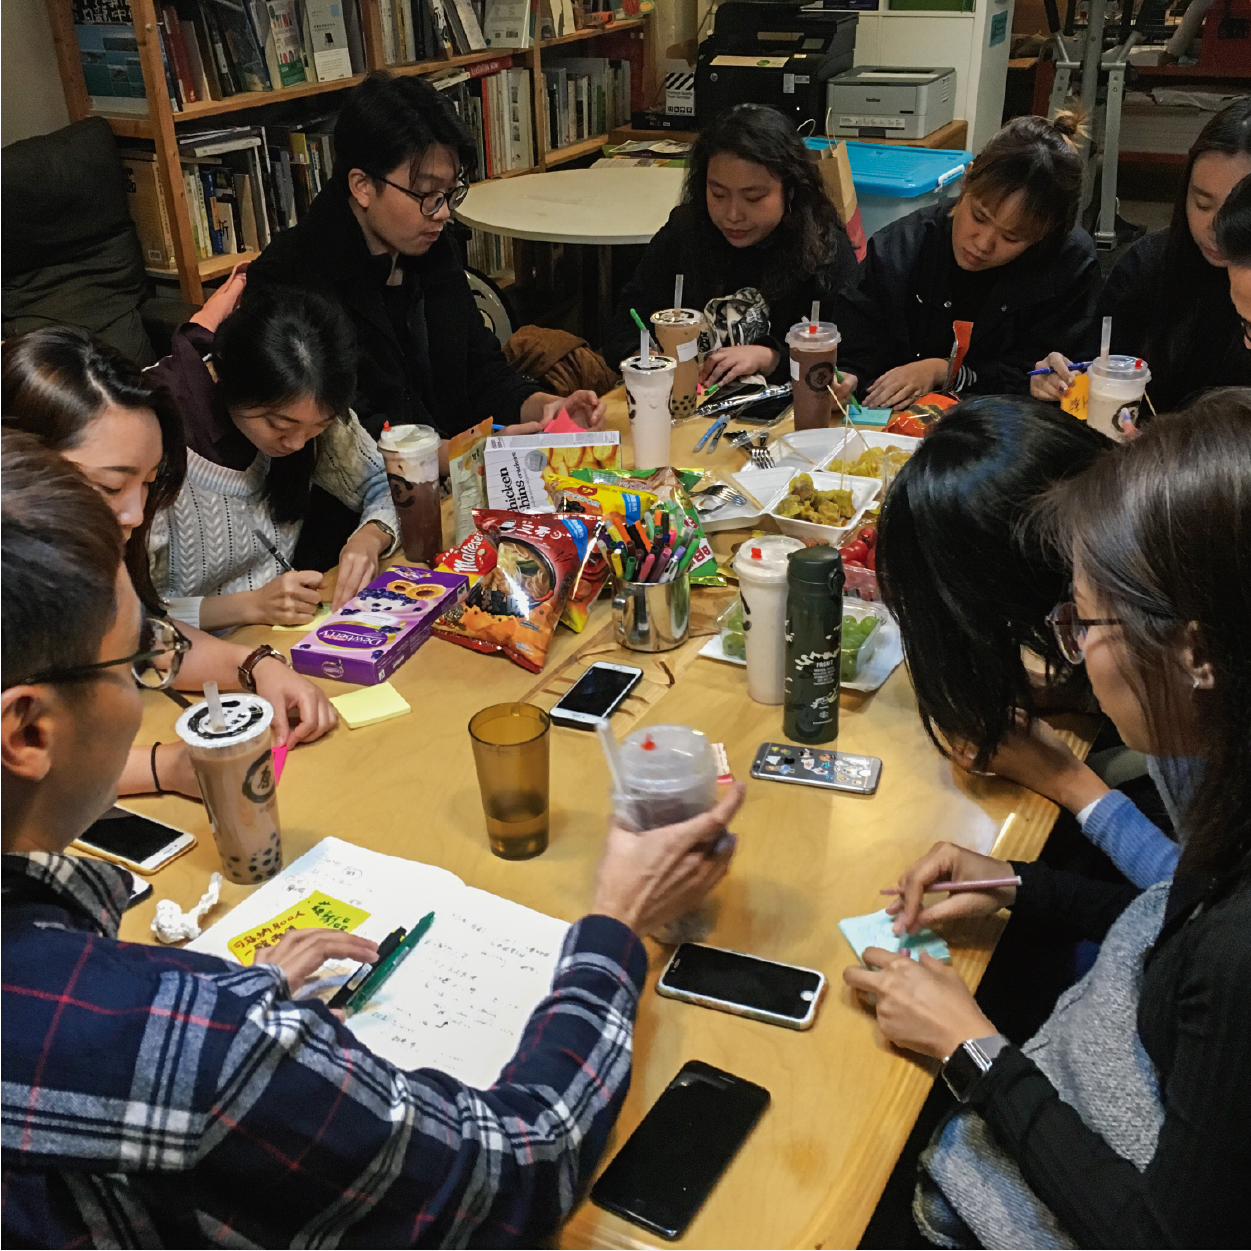 Community Profiling Study for the Service Development of HCYD and Planning of the Social Impact Assessment   Making on Loft 樂在製造社區設計及研習所